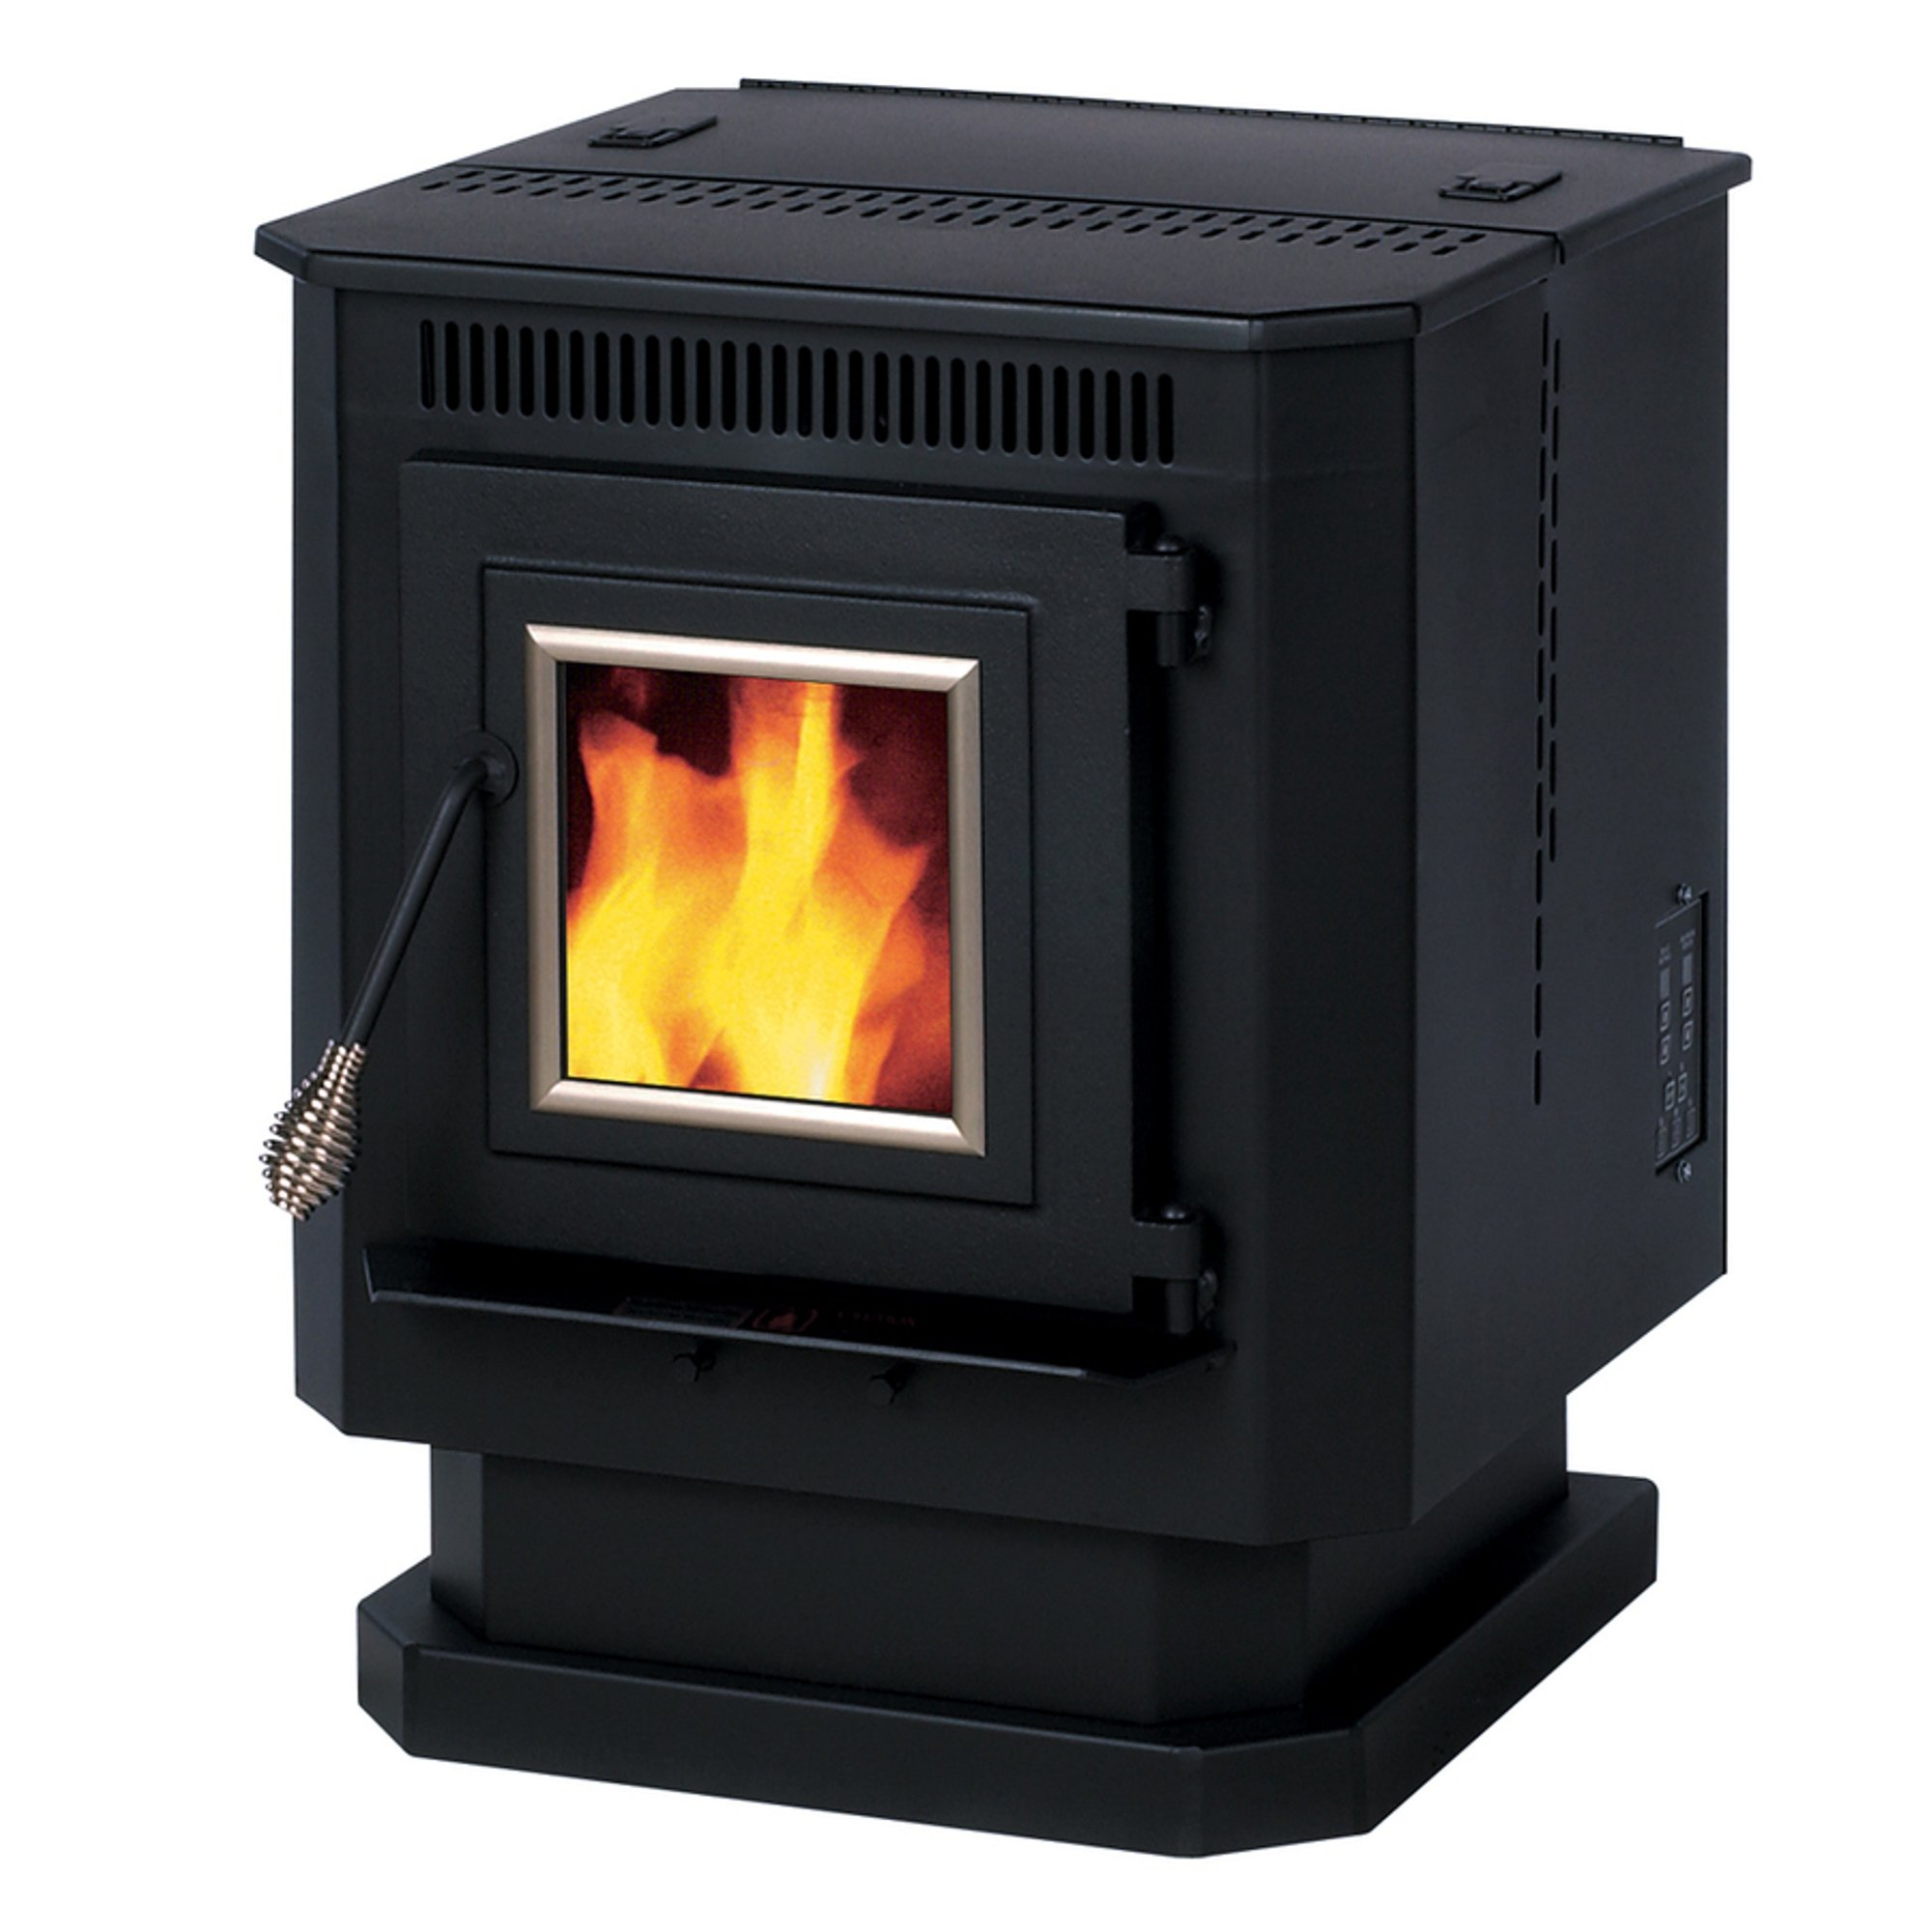 Summers Heat 55-SHP10 Pellet Stove 1,500 Square Foot by Summers Heat